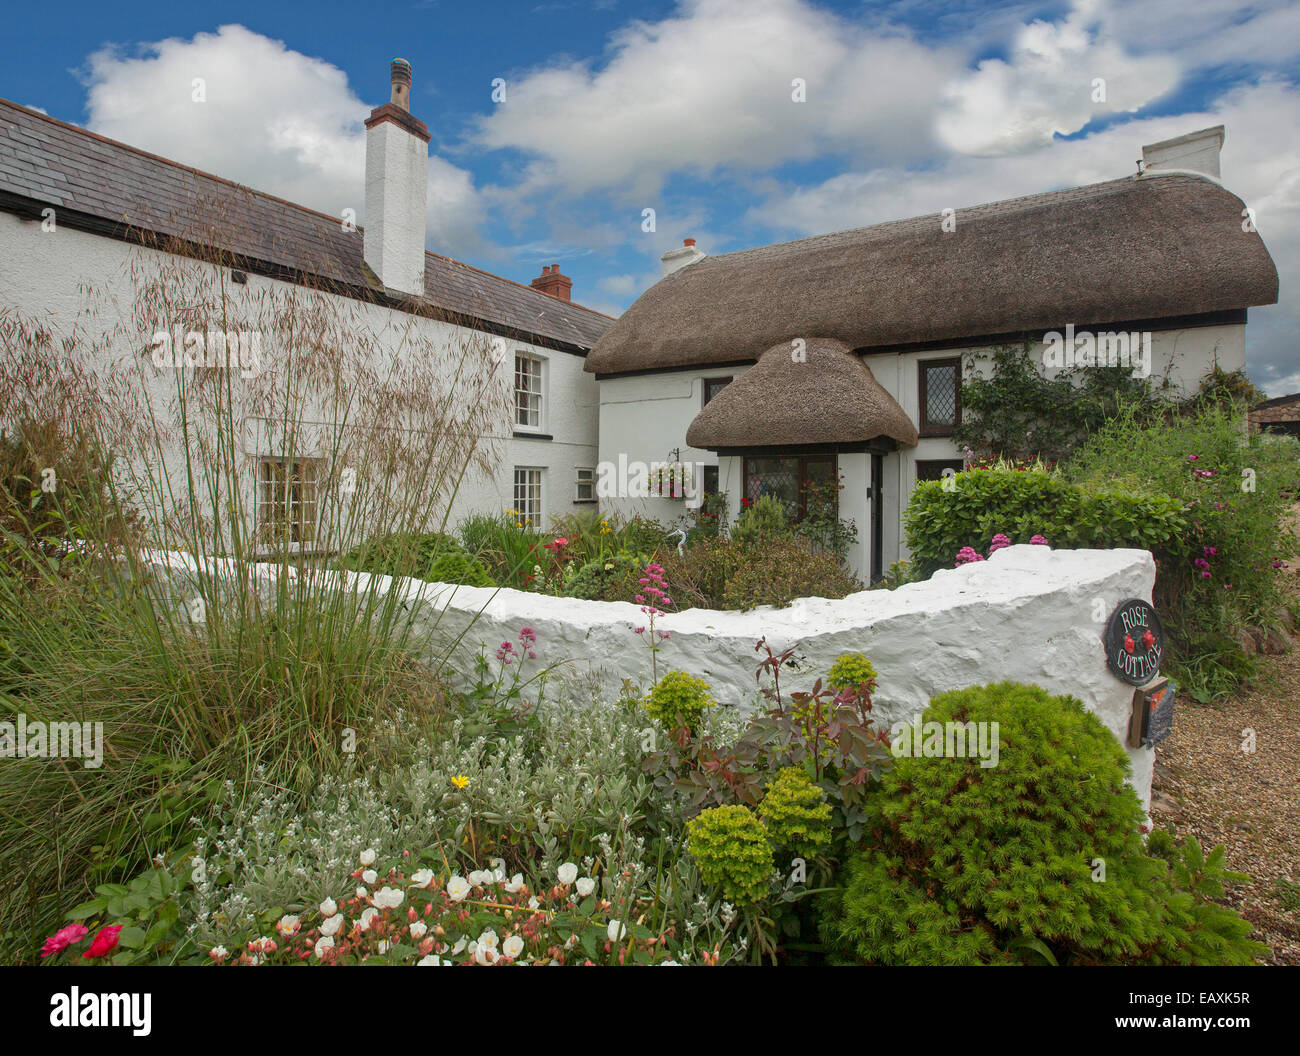 White Painted Thatched Roof Cottage Stockfotos & White Painted ...